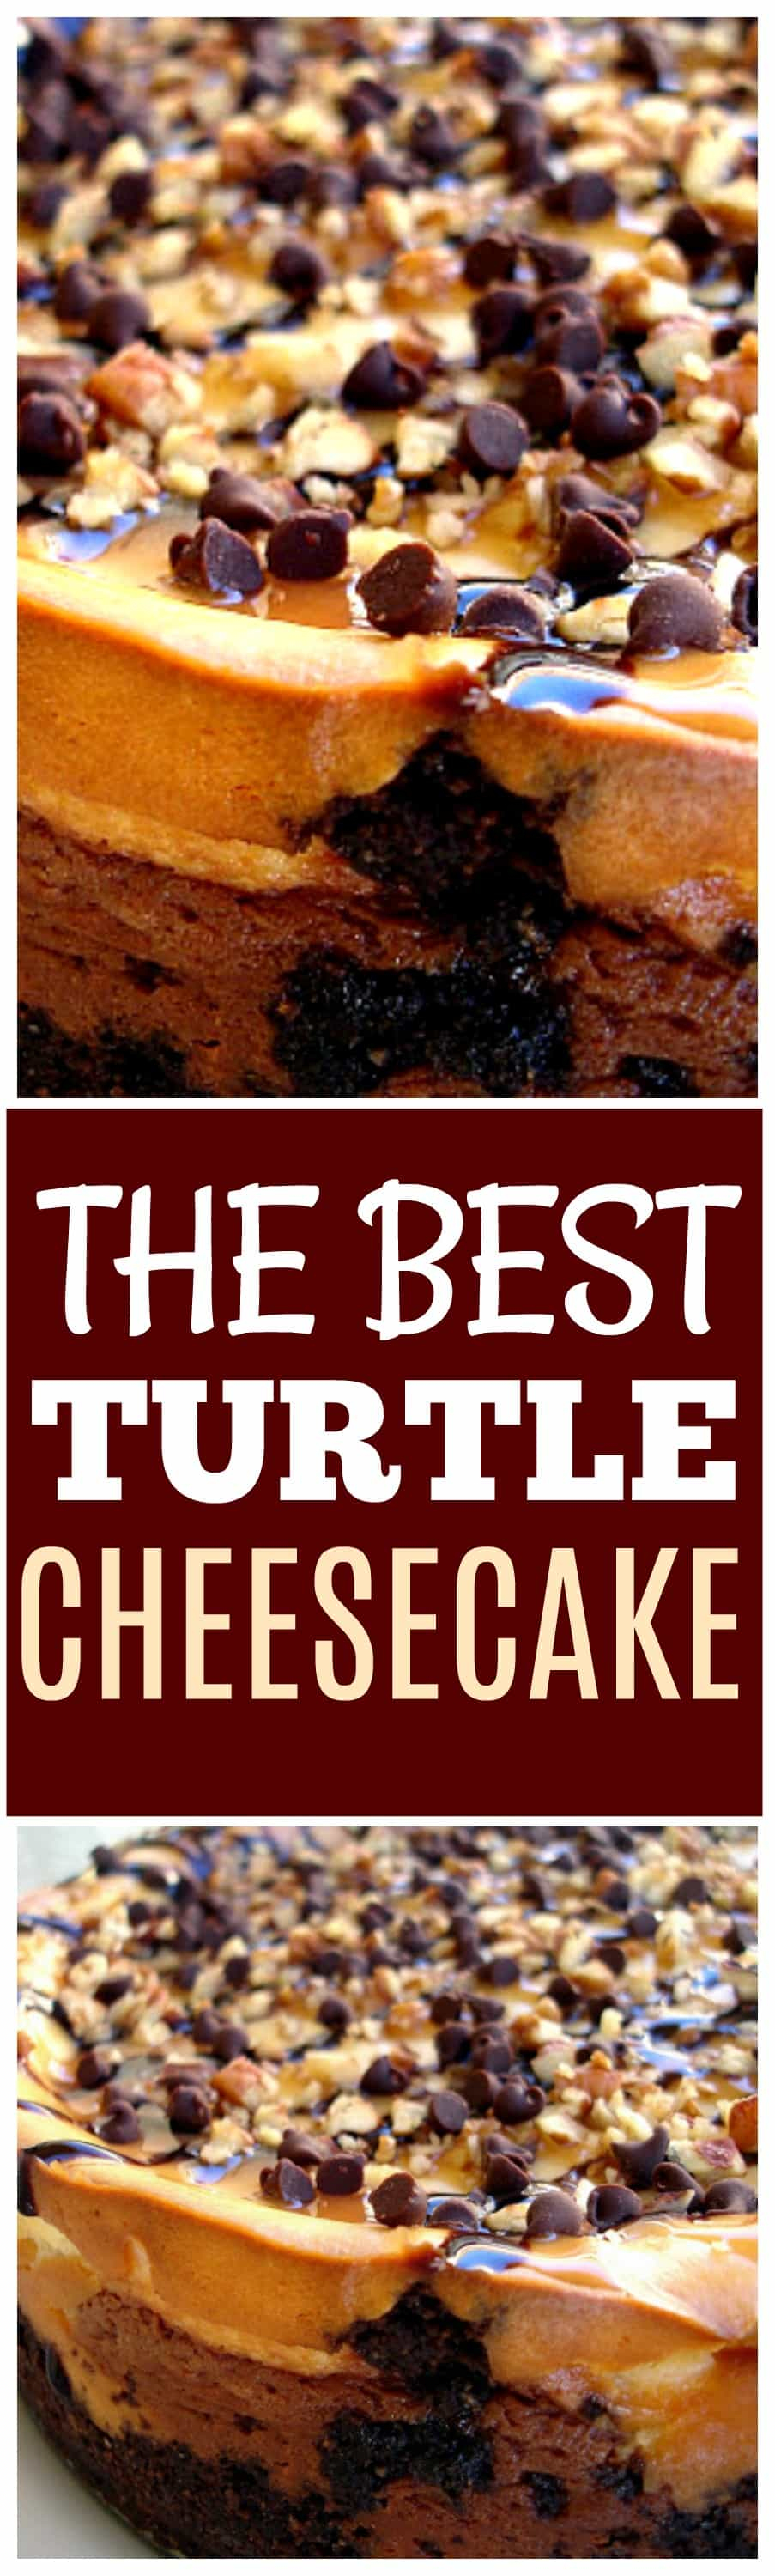 This Turtle Cheesecake is so creamy and topped caramel, nuts, and chocolate chips. the-girl-who-ate-everything.com